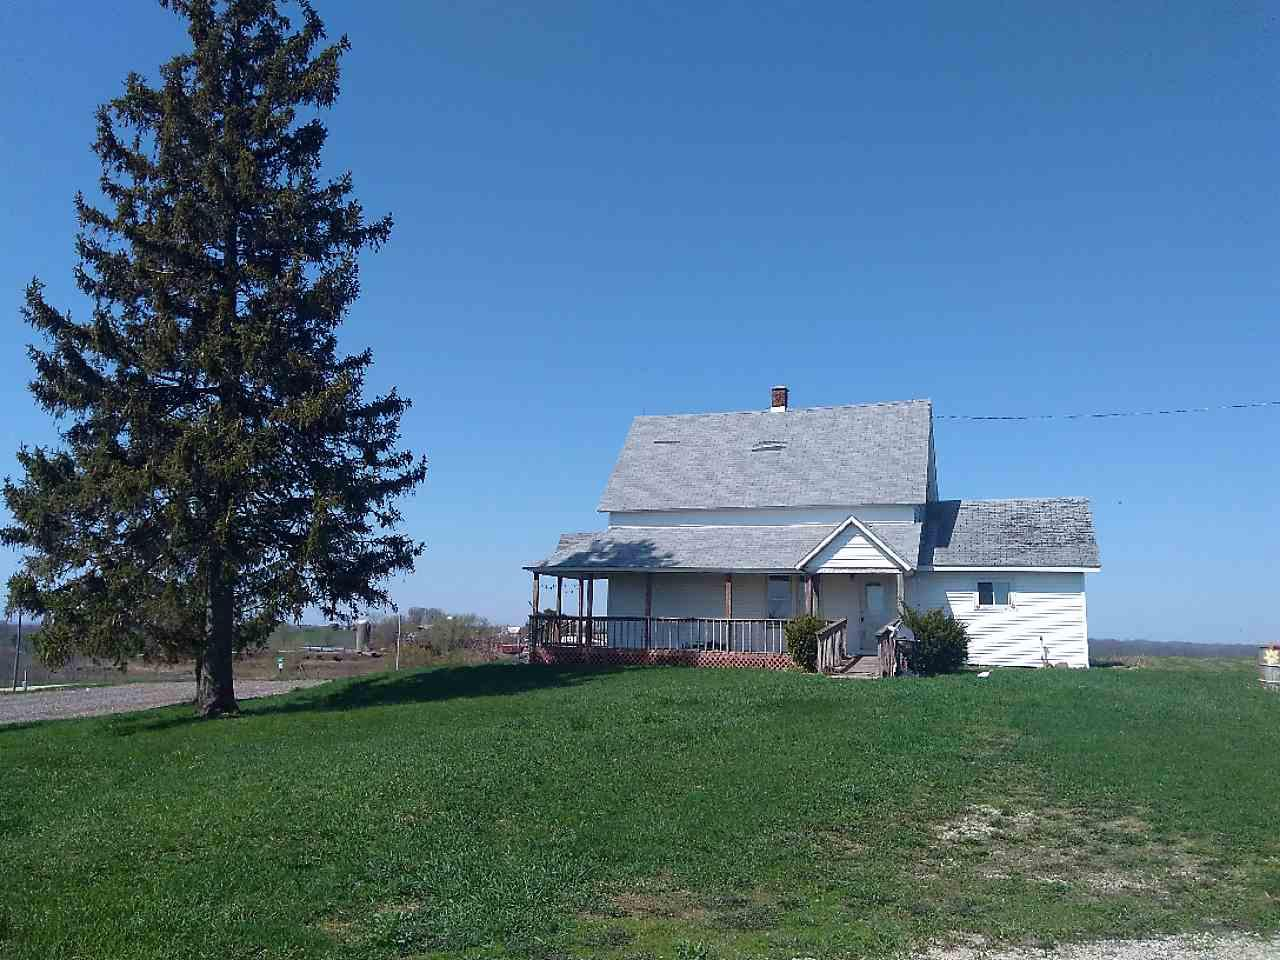 Beautiful homestead with breath-taking views on peaceful ridge near the Mississippi River! This farm includes with a 80x40' machine shed, 42 station milking barn, 3 car garage, small calf shed and 2 corn cribs. The home has a new furnace, hot water heater, ventilation in bathroom & added insulation to the attic! There is a bedroom and laundry on the main level as well as a covered porch with a ramp, to take in the morning sunrises. There is approximately 15 acres of tillable ground and 5 pasture.  This property sets up well for a hobby farm or for growing produce! Home needs some TLC. Selling AS IS.